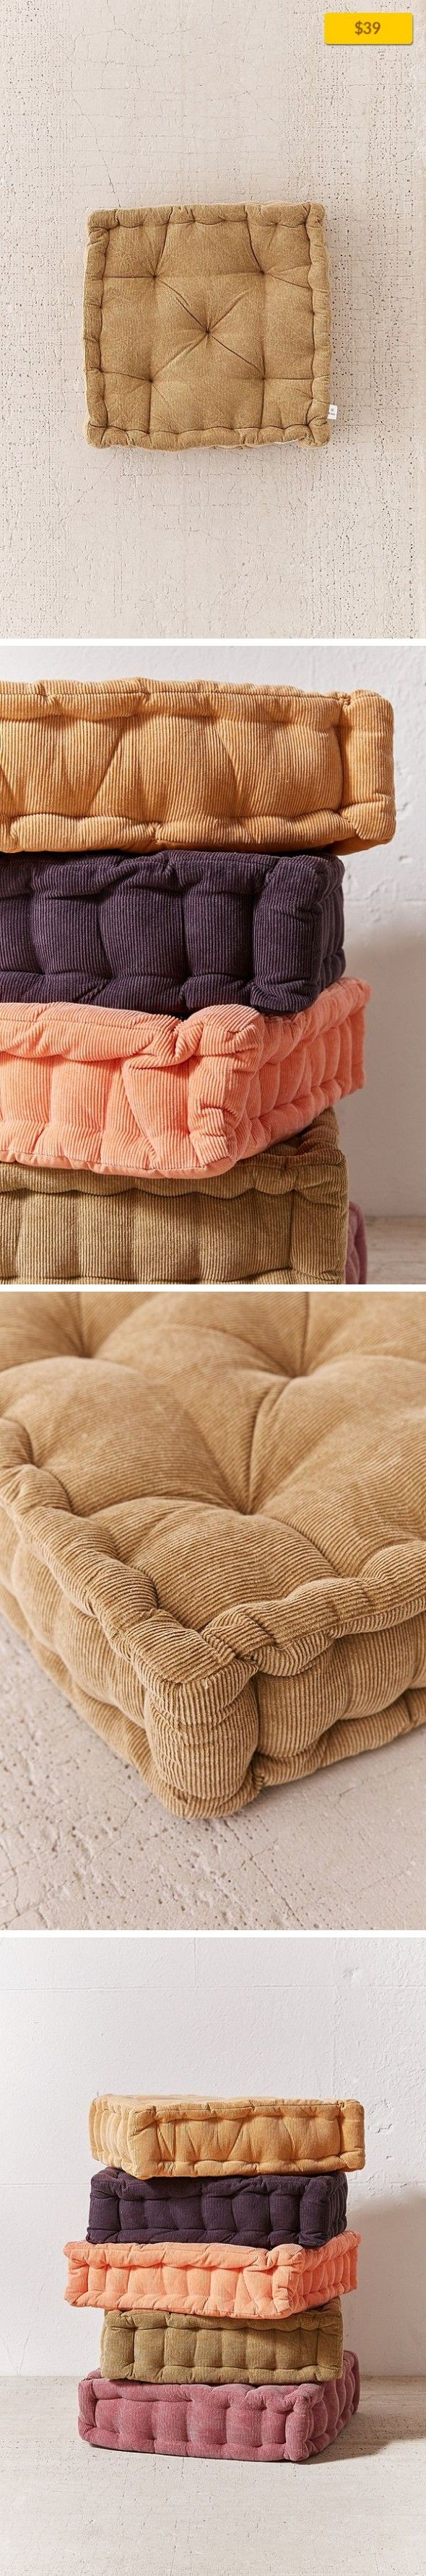 Oversized Pillows For The Floor : Best 25+ Oversized floor pillows ideas on Pinterest Oversized pillows, Giant floor cushions ...